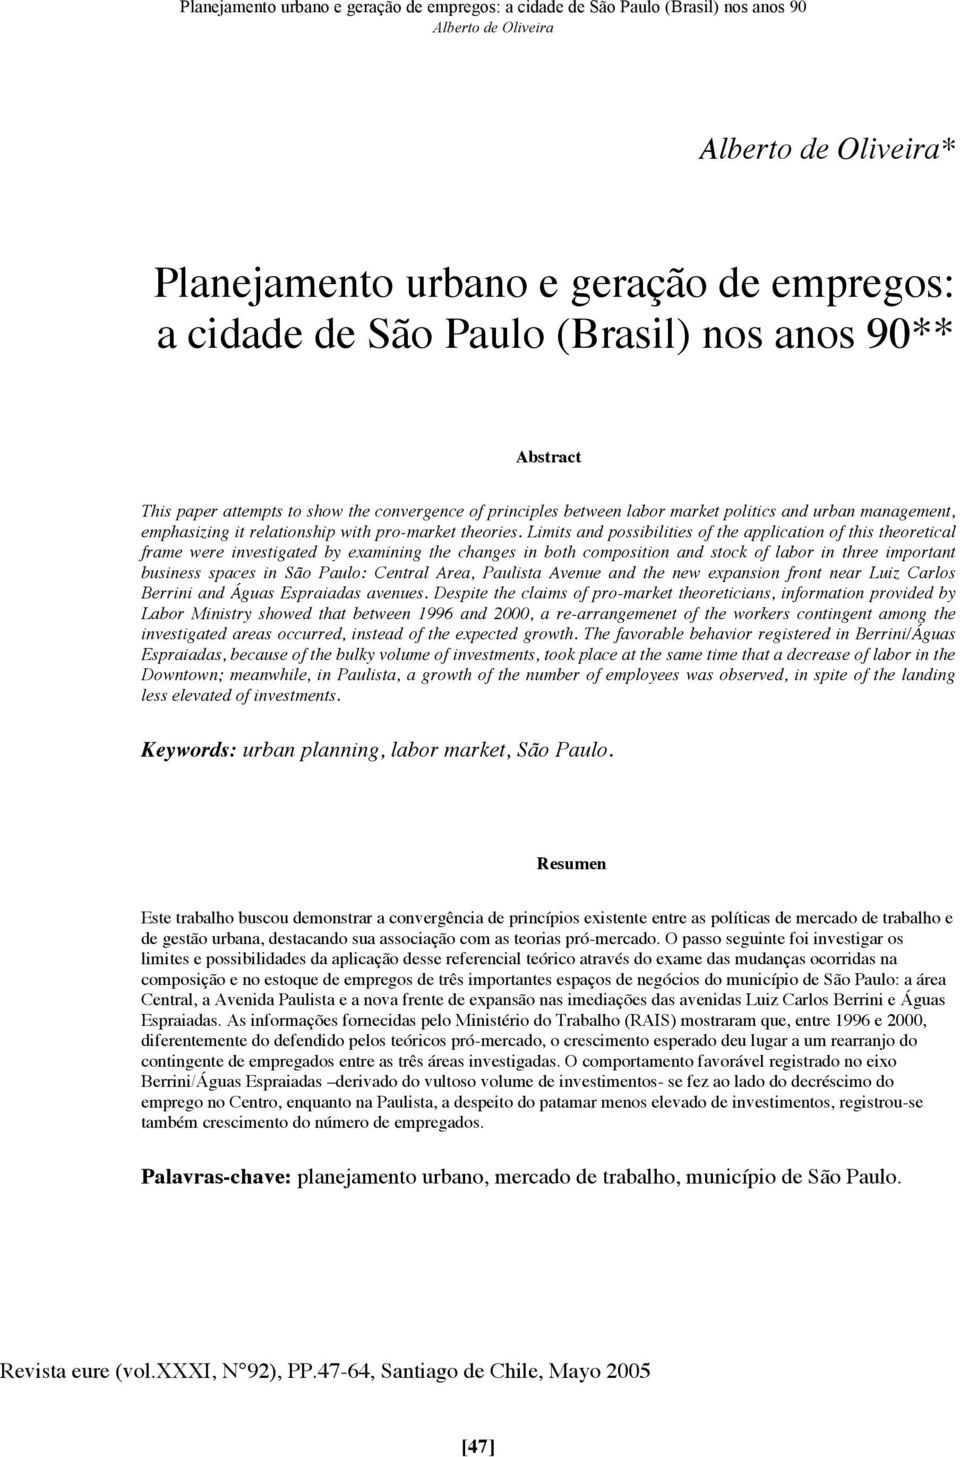 Limits and possibilities of the application of this theoretical frame were investigated by examining the changes in both composition and stock of labor in three important business spaces in São